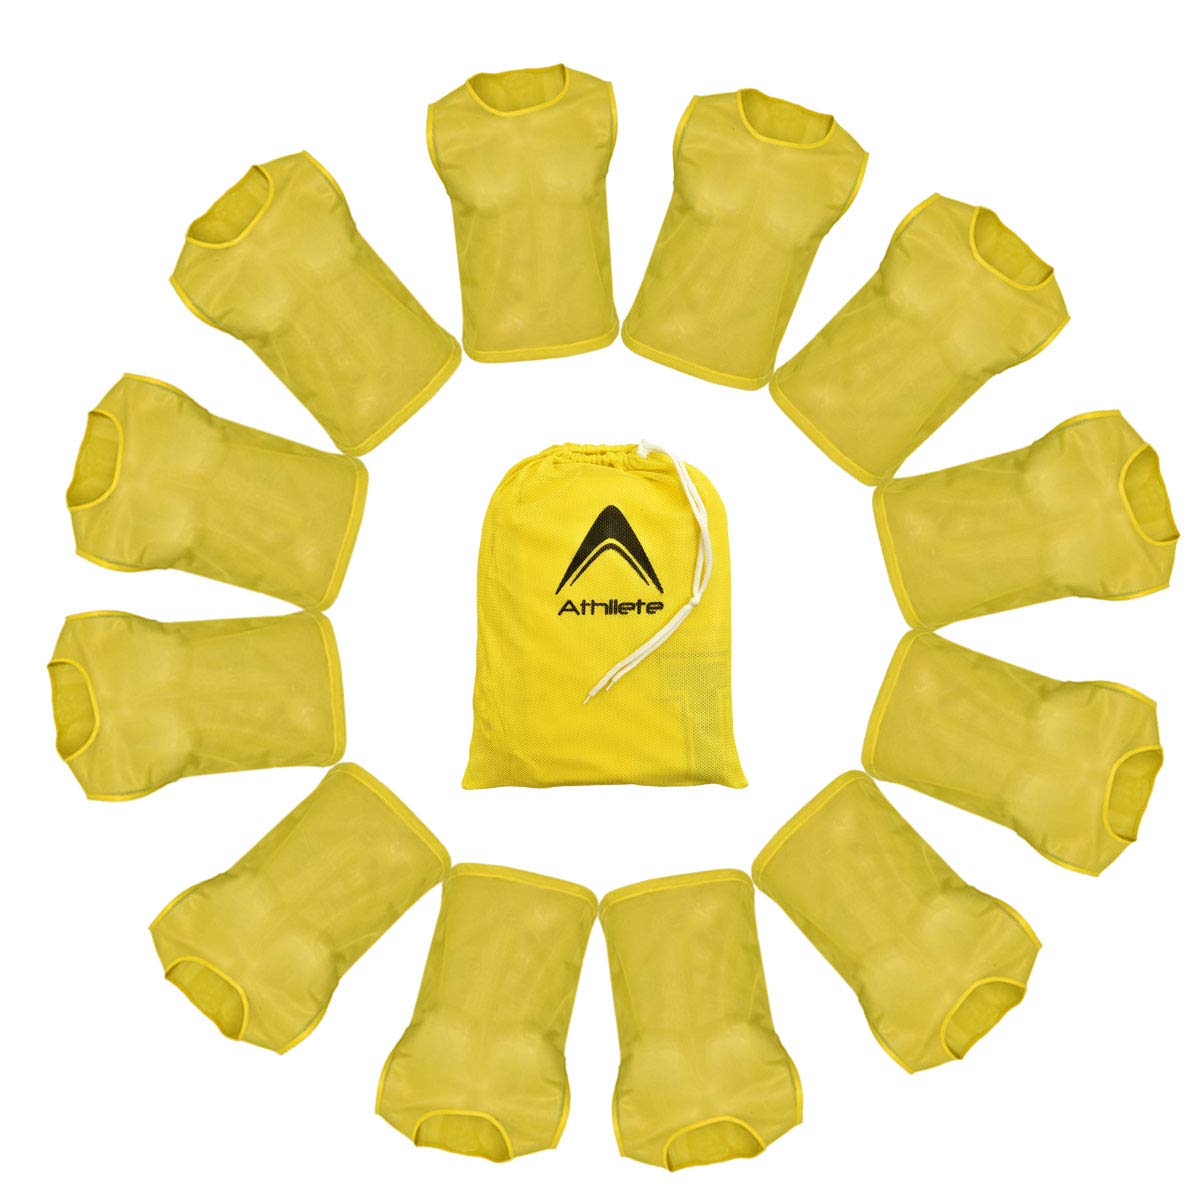 Athllete Set of 12- Scrimmage Vest/Pinnies/Team Practice Jerseys with Free Carry Bag. Sizes for Children, Youth, Adult and Adult XXL (Golden Yellow, XX-Large) by Athllete